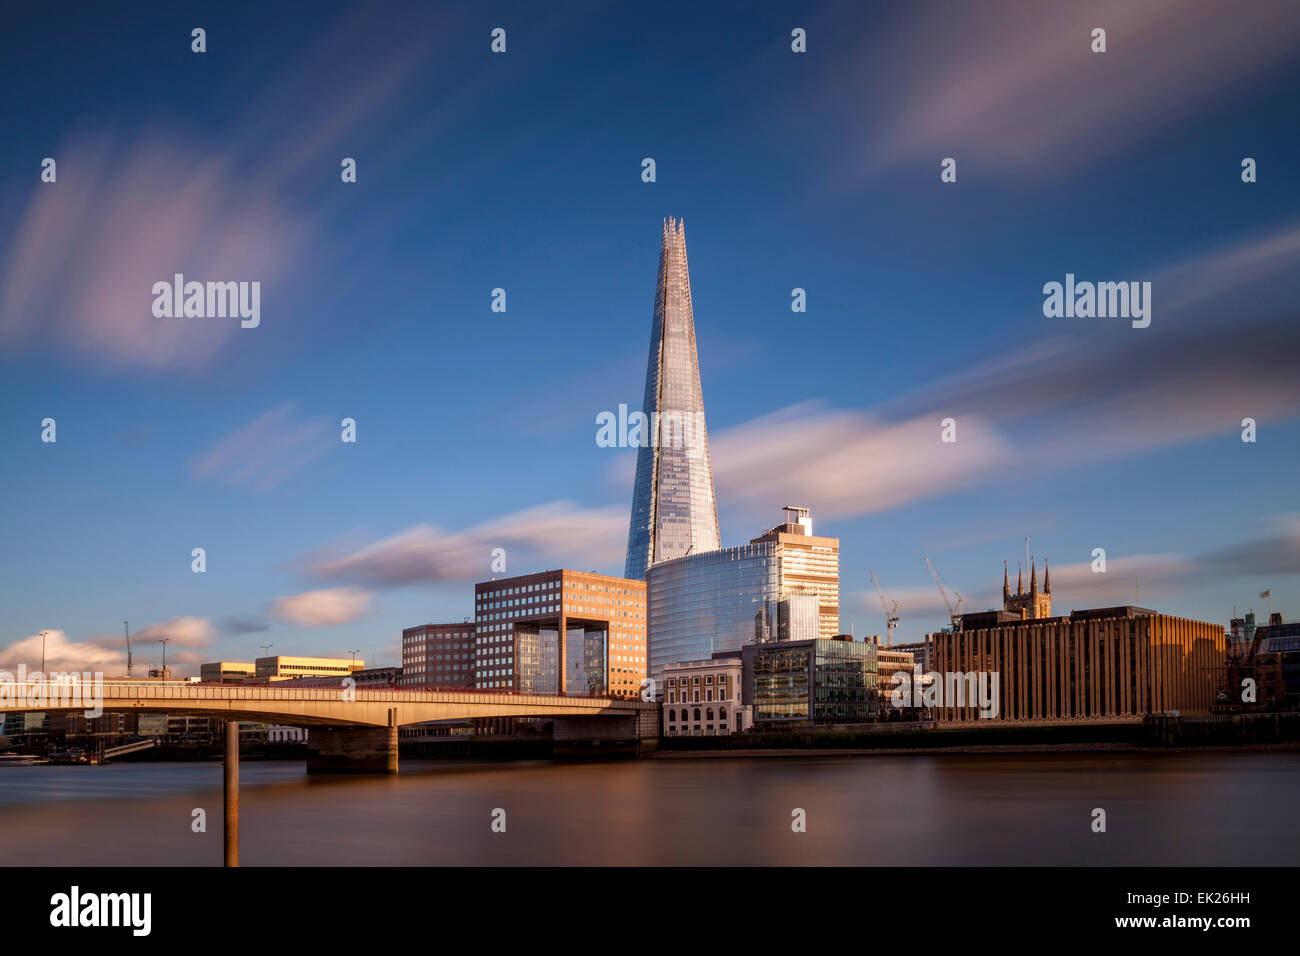 The Shard and London Bridge, London, England - Stock Image